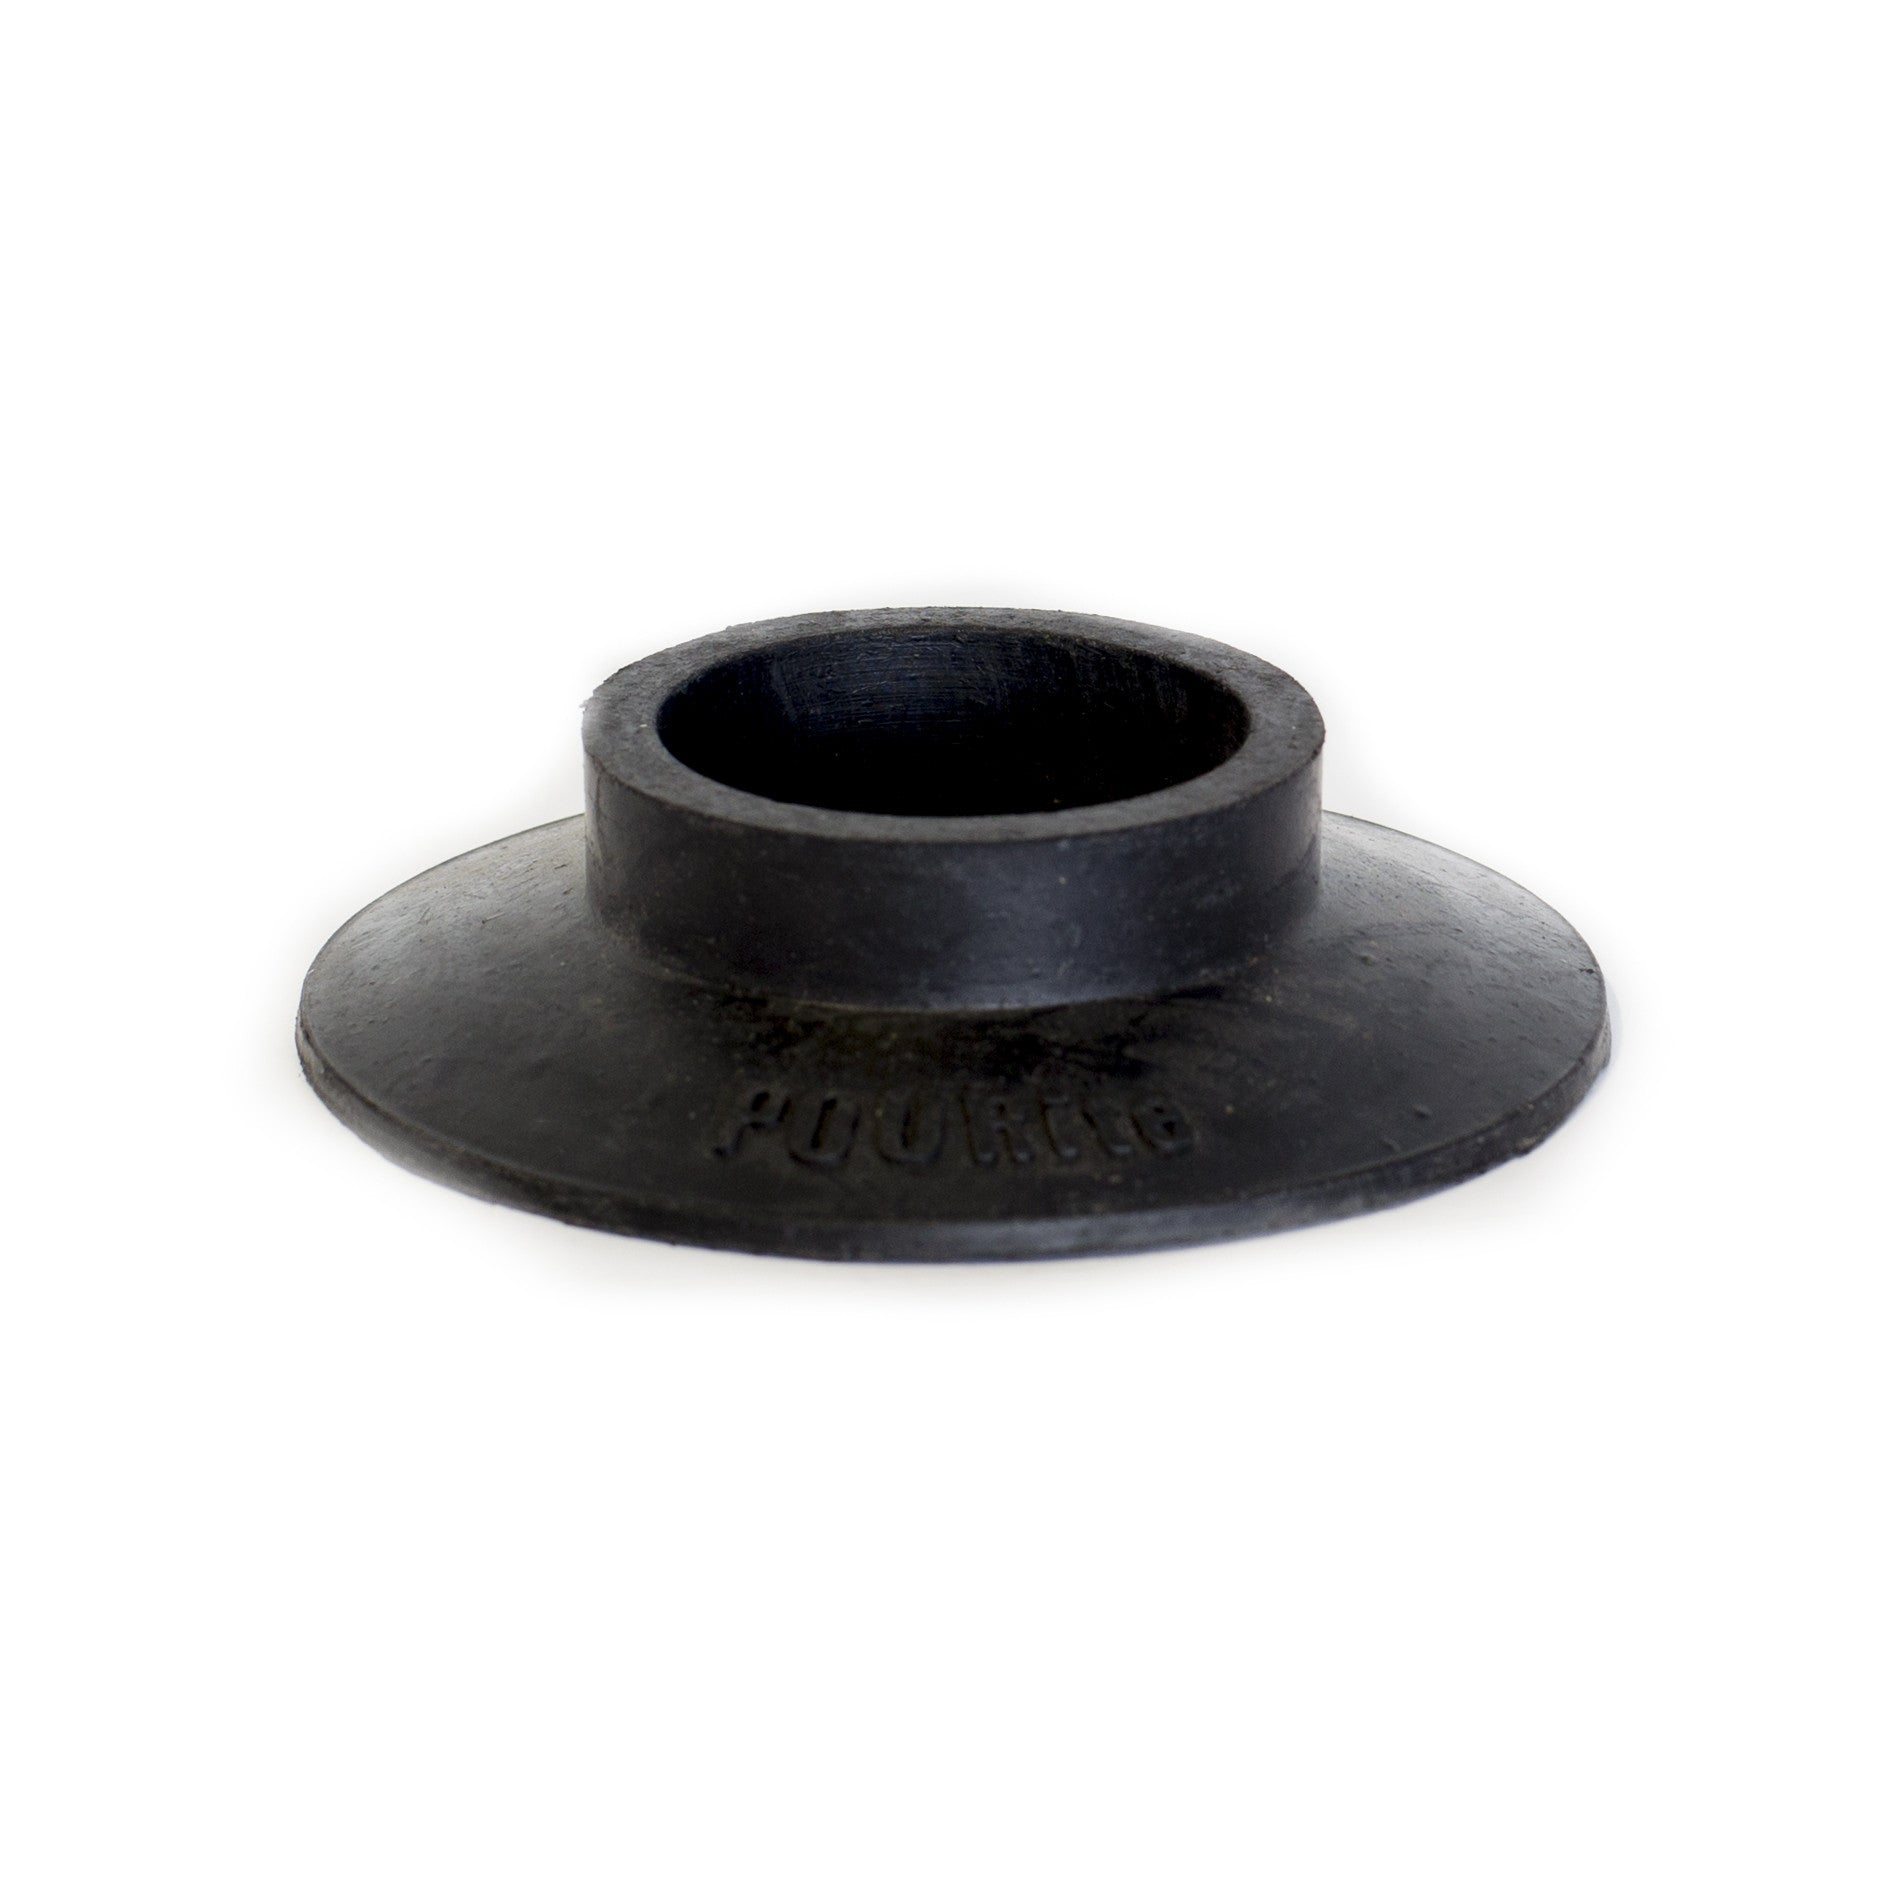 46mm ROUND RUBBER BASE